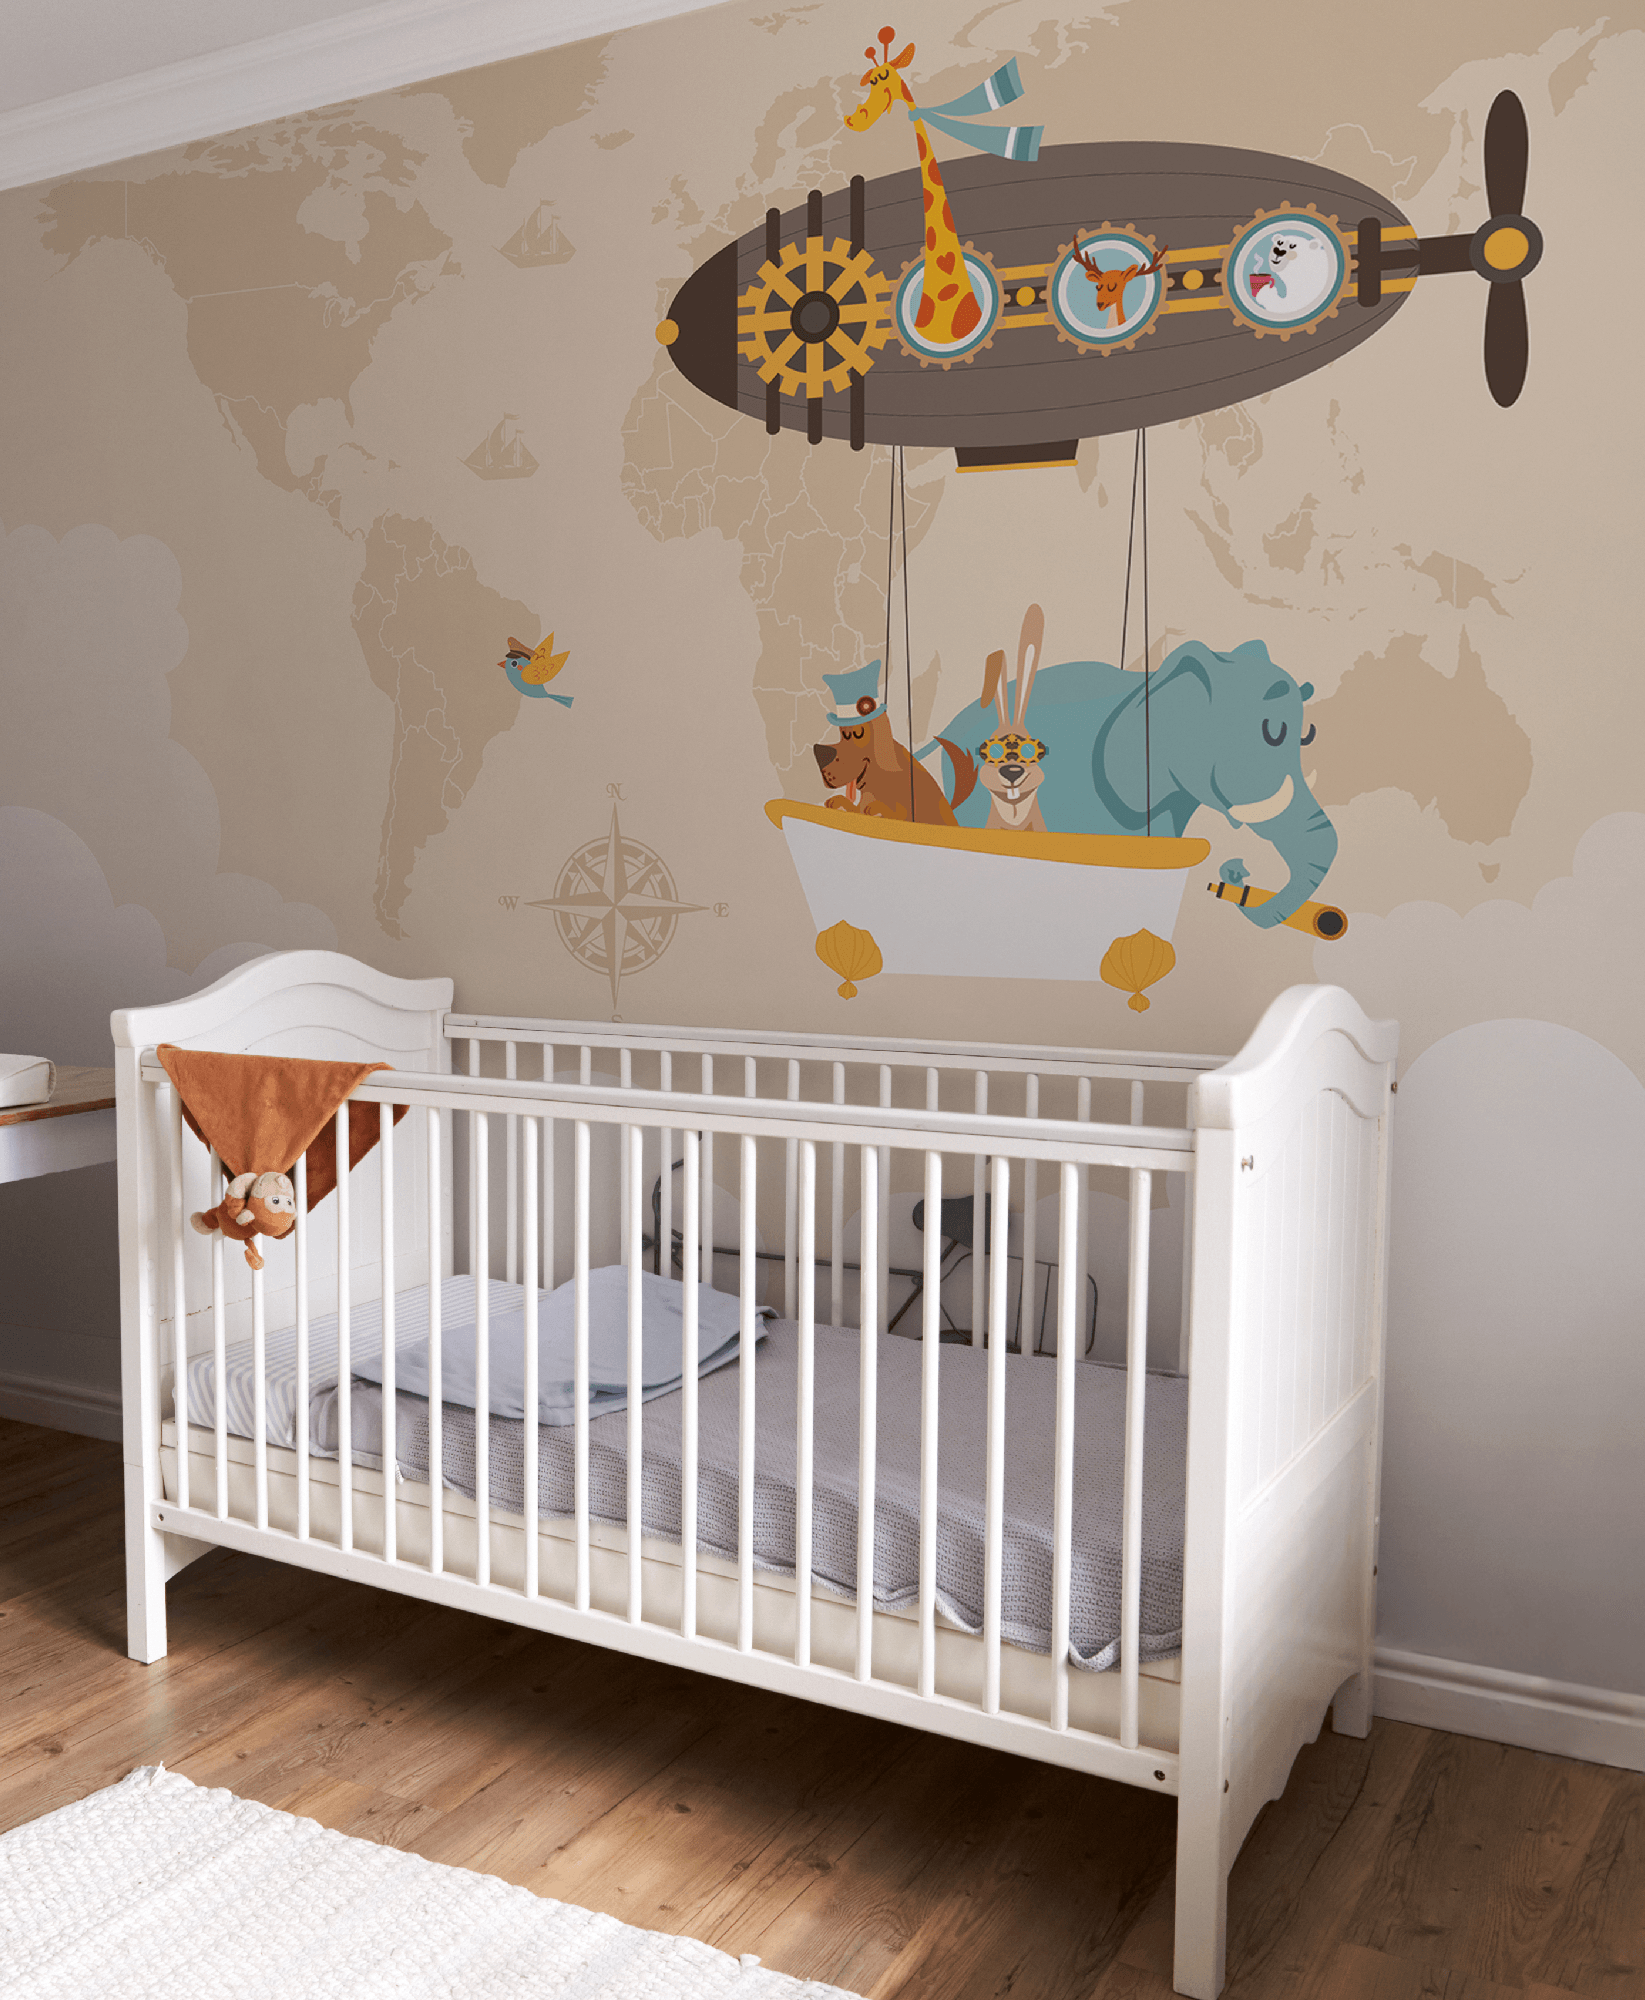 Carta Da Parati Per Camerette Neonati.Around The World Carta Da Parati Per Bambini Baby Design Wallpaper